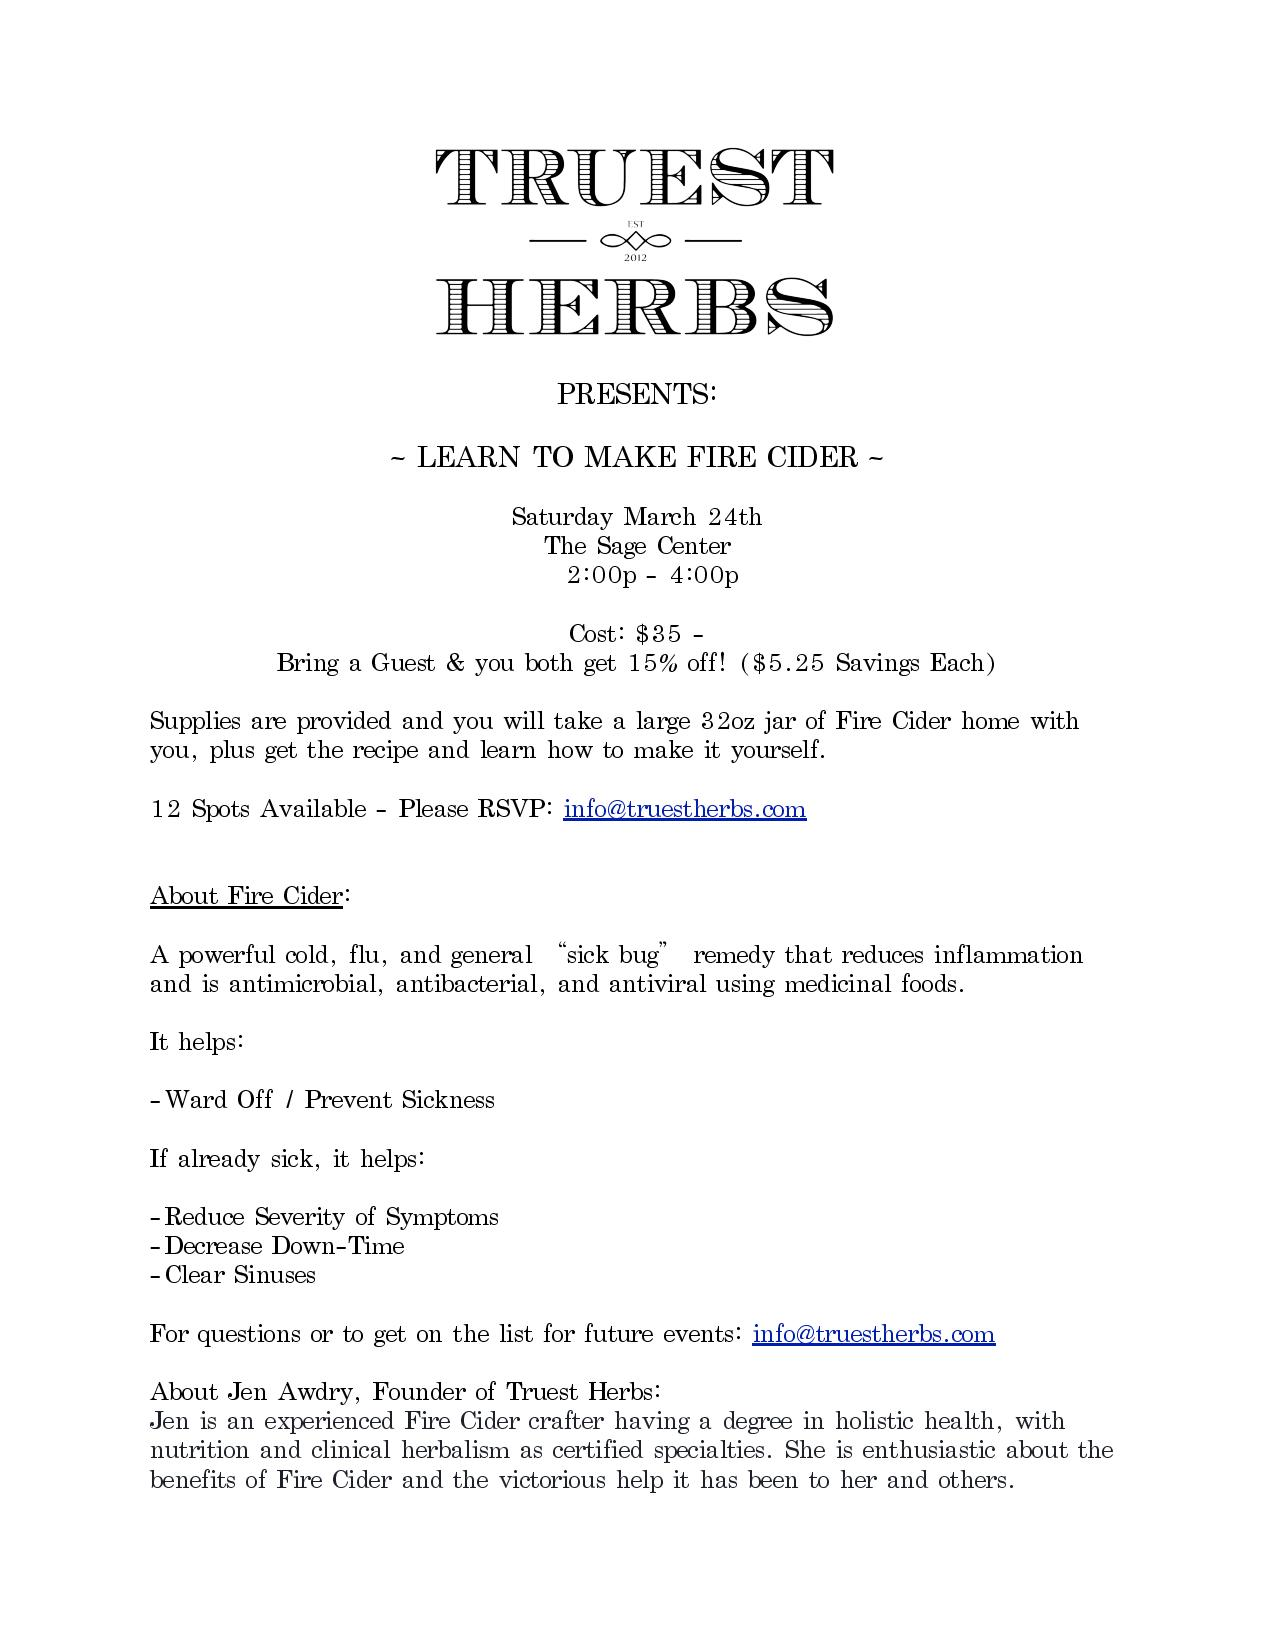 TRUEST HERBS PRESENTS: Learn to Make a Fire Cider